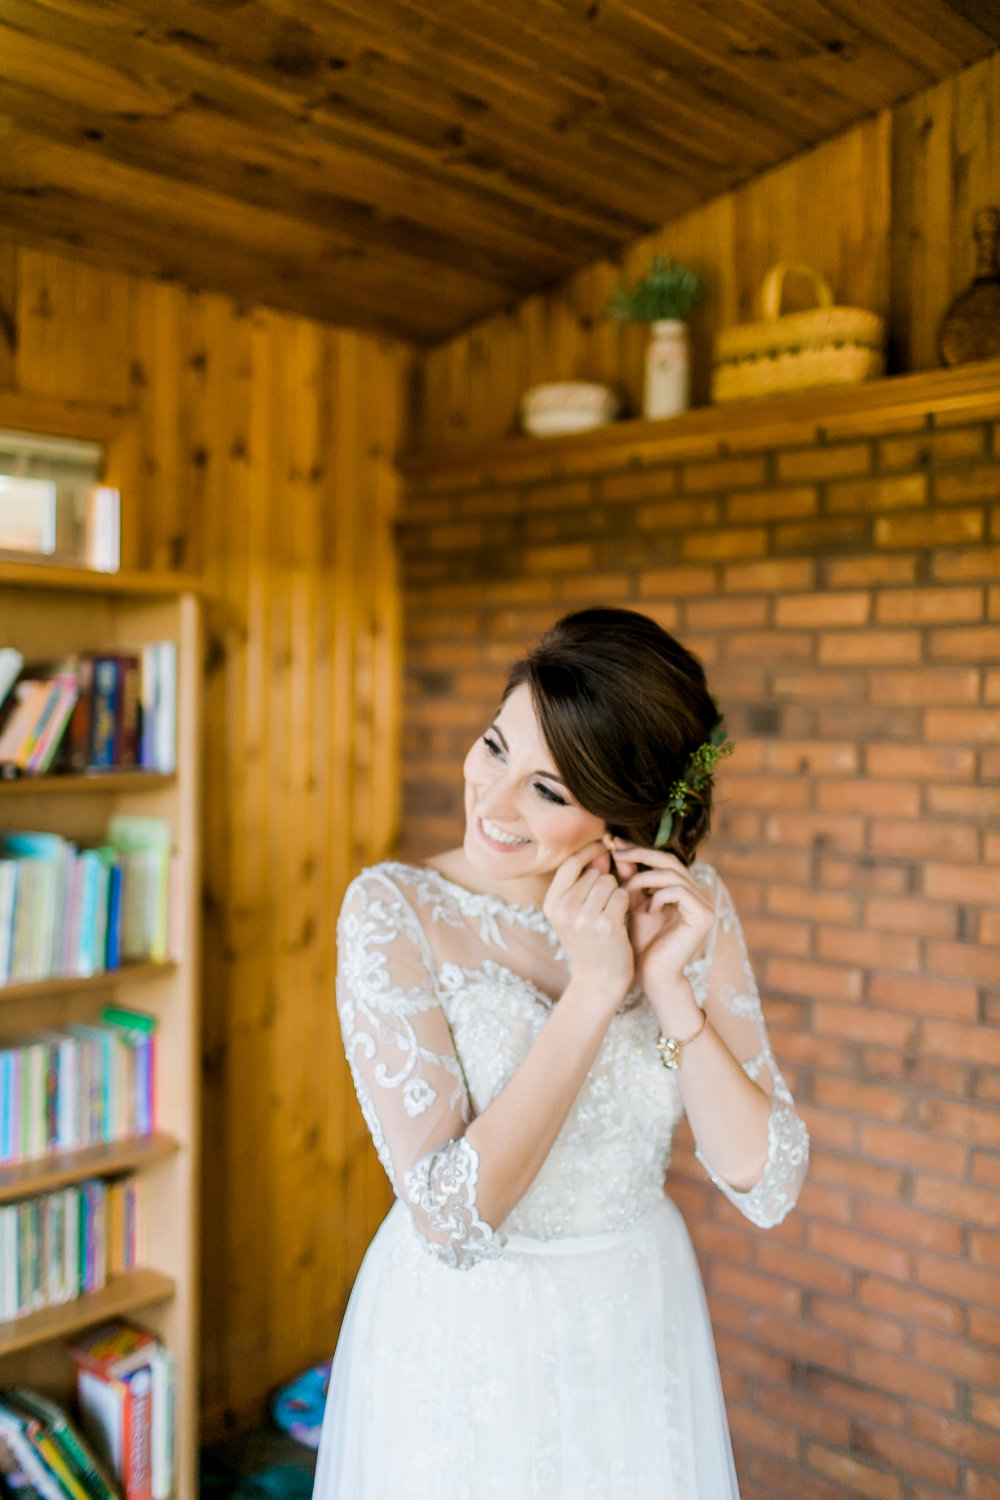 MissouriRusticWedding_StLouisWeddingPhotographer_AliciaDan_CatherineRhodesPhotography-608-Edit.jpg